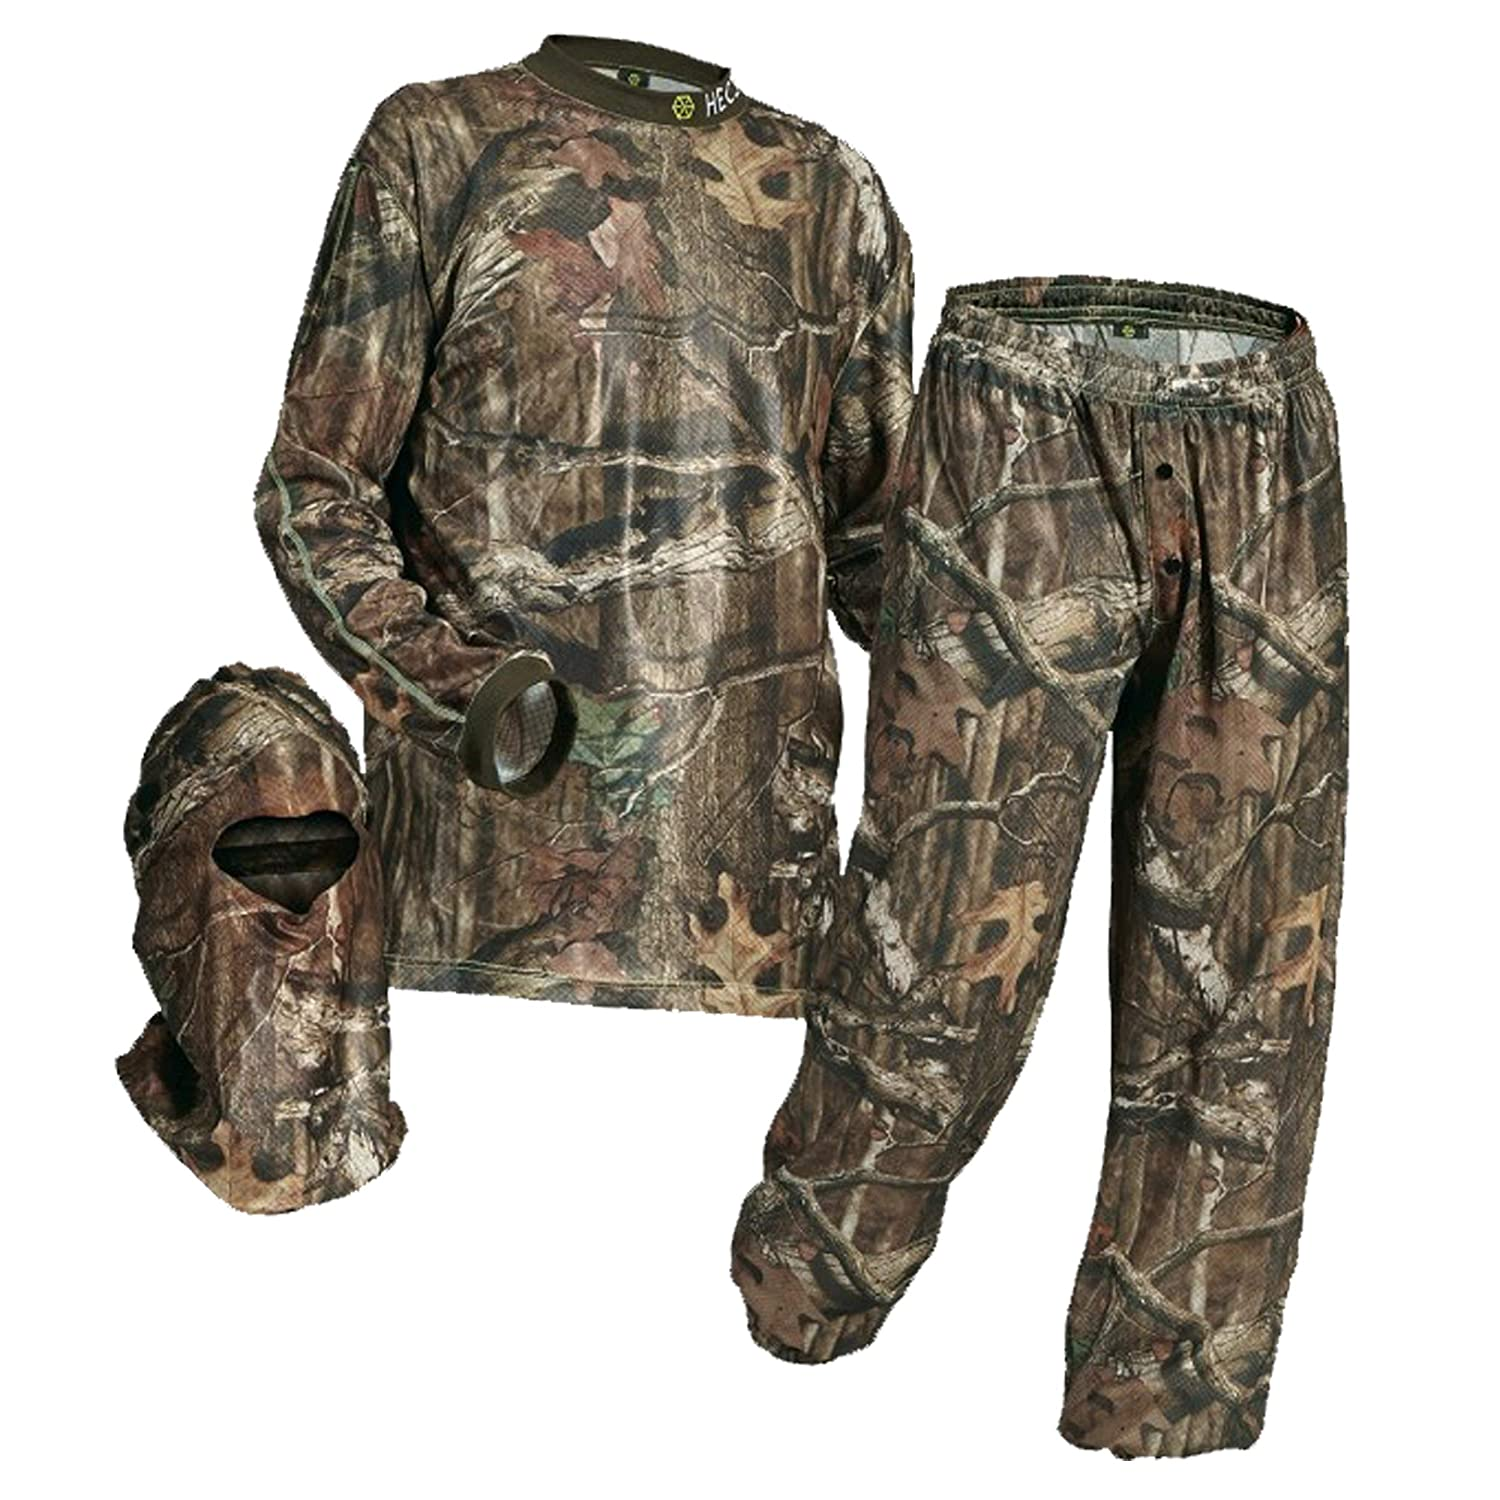 e5cde79bd201e Amazon.com : HECS Hunting - Energy Concealing 3-Piece Hunting Suit -  Includes Shirt, Pants & Headcover : Clothing